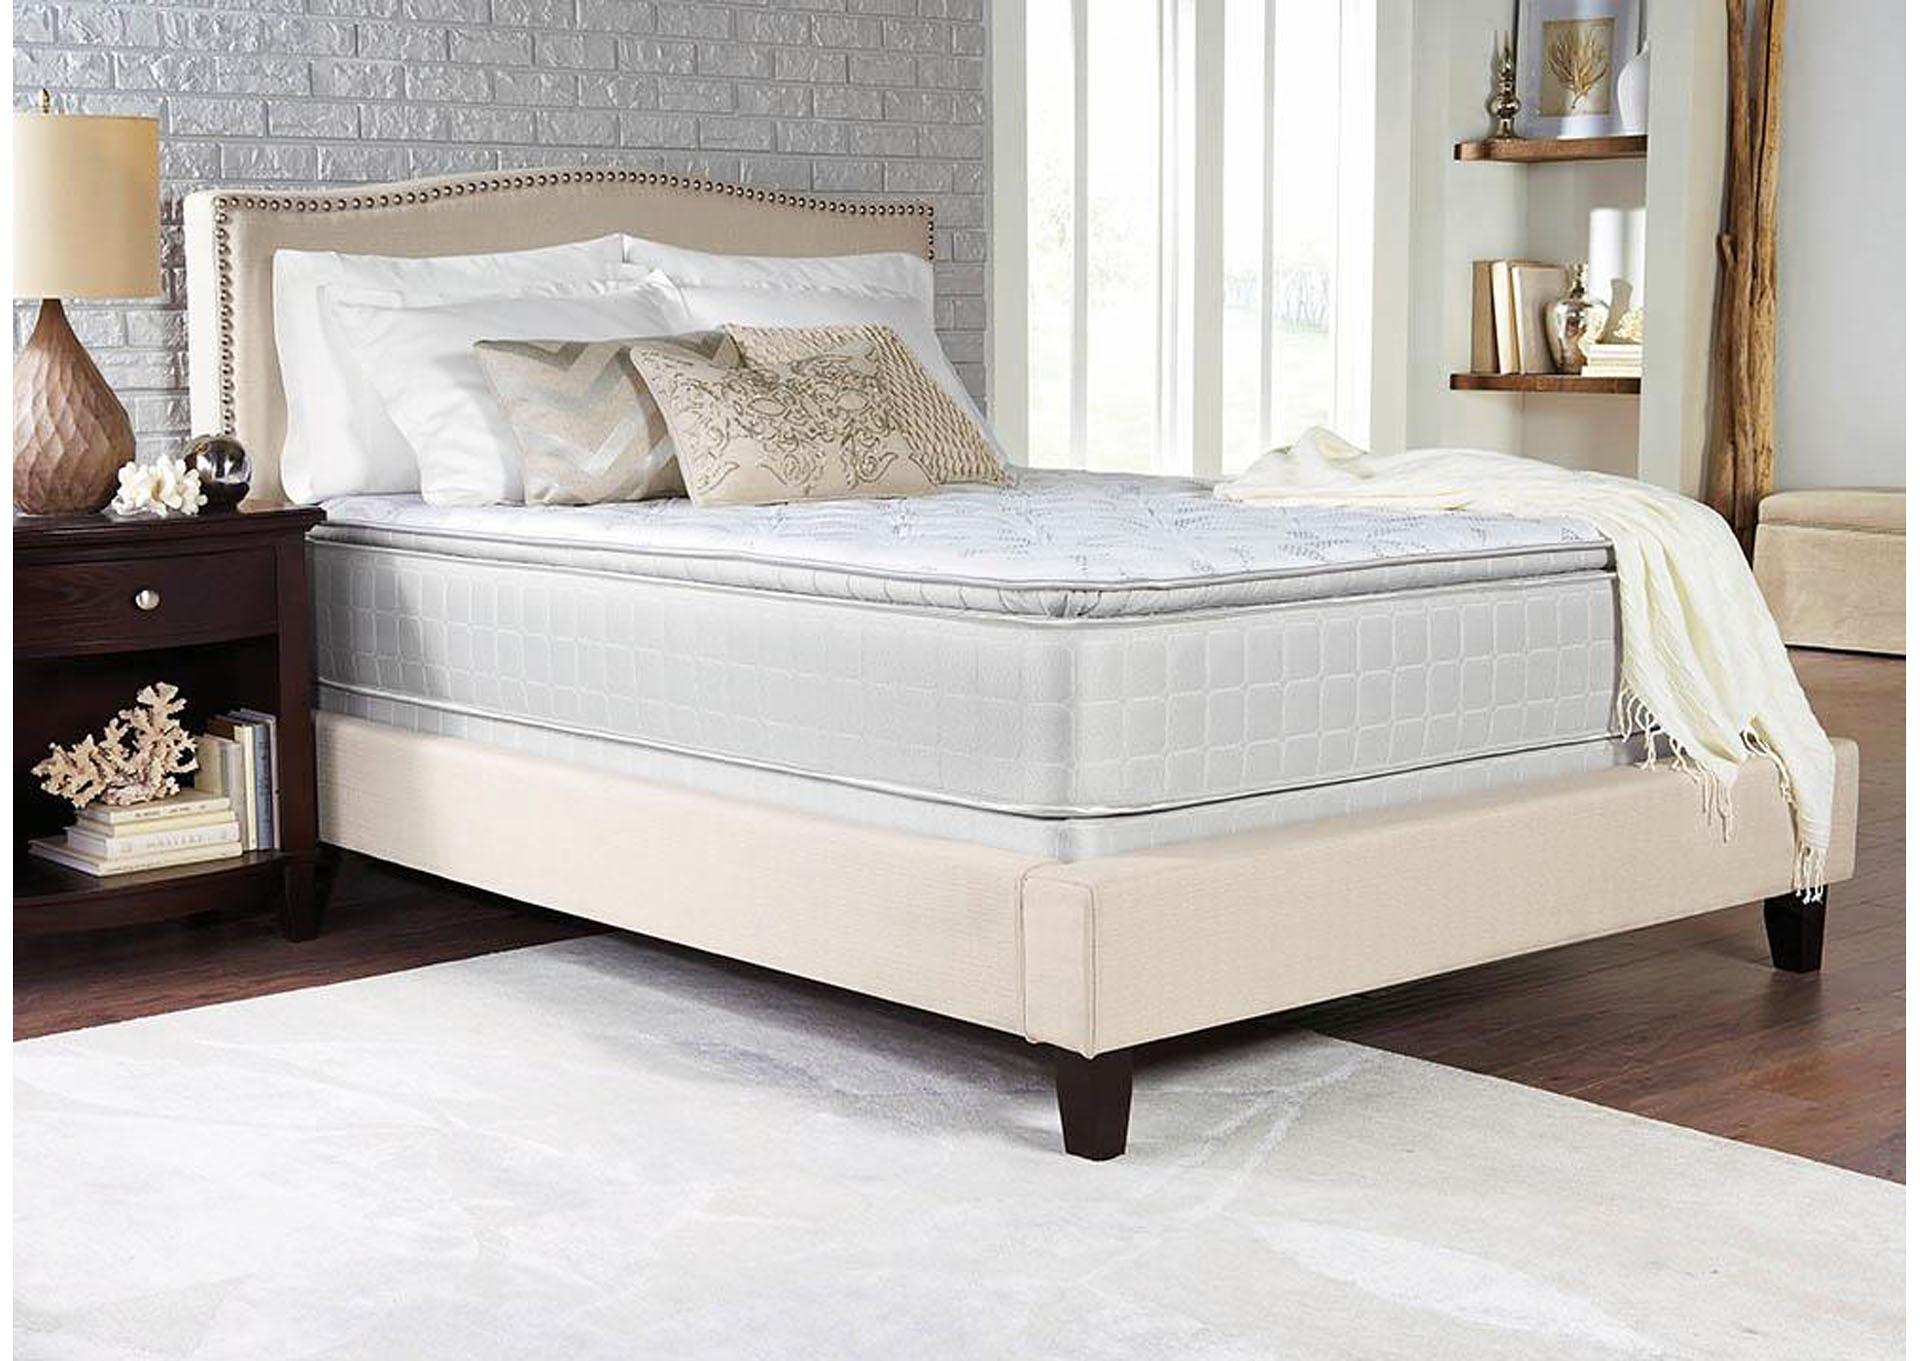 connerbed bed eastern mattress king connor dfw furnituremart black